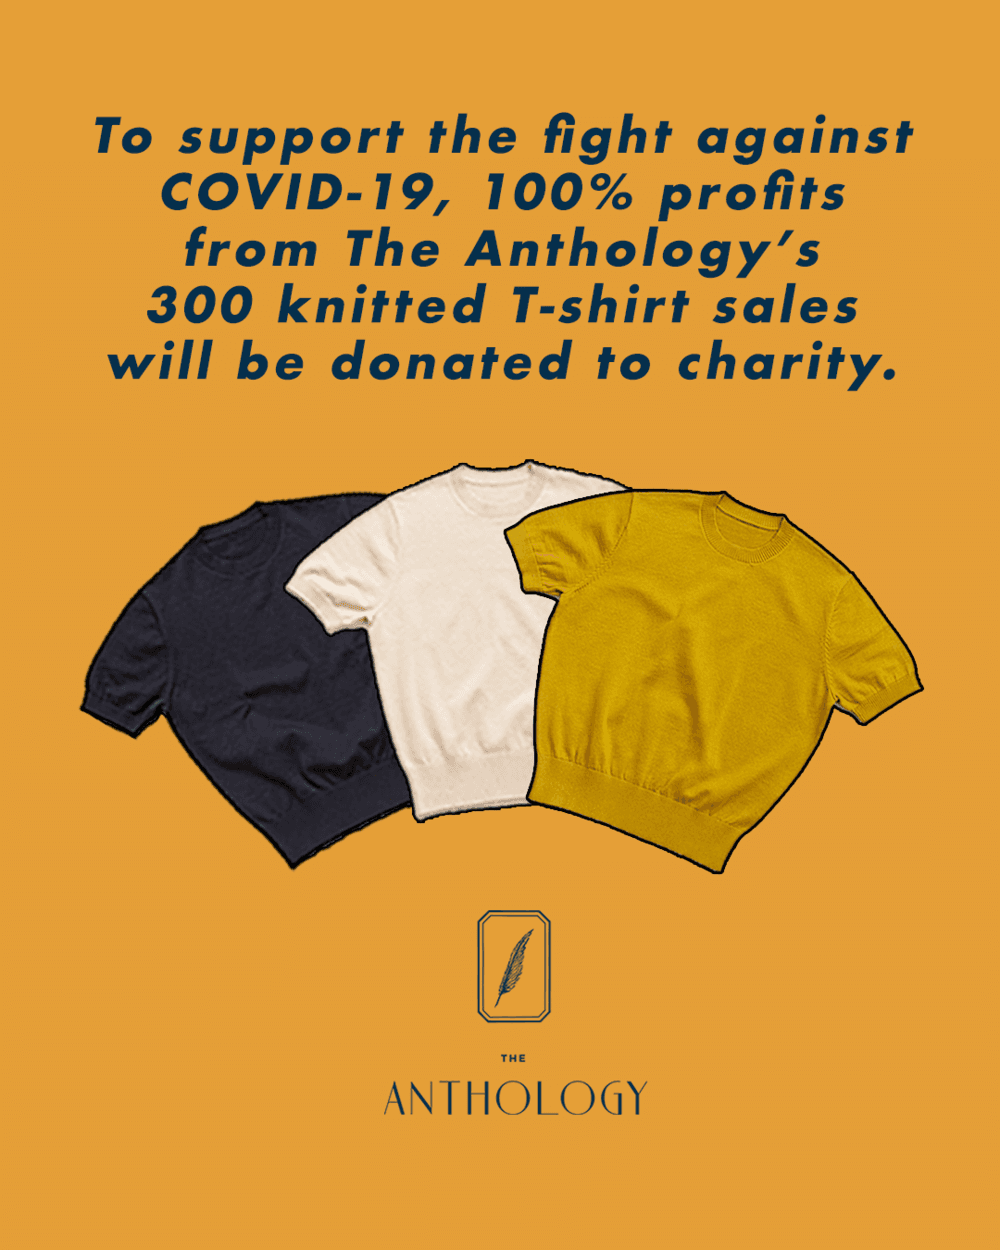 The Anthology COVID-19 Campaign poster